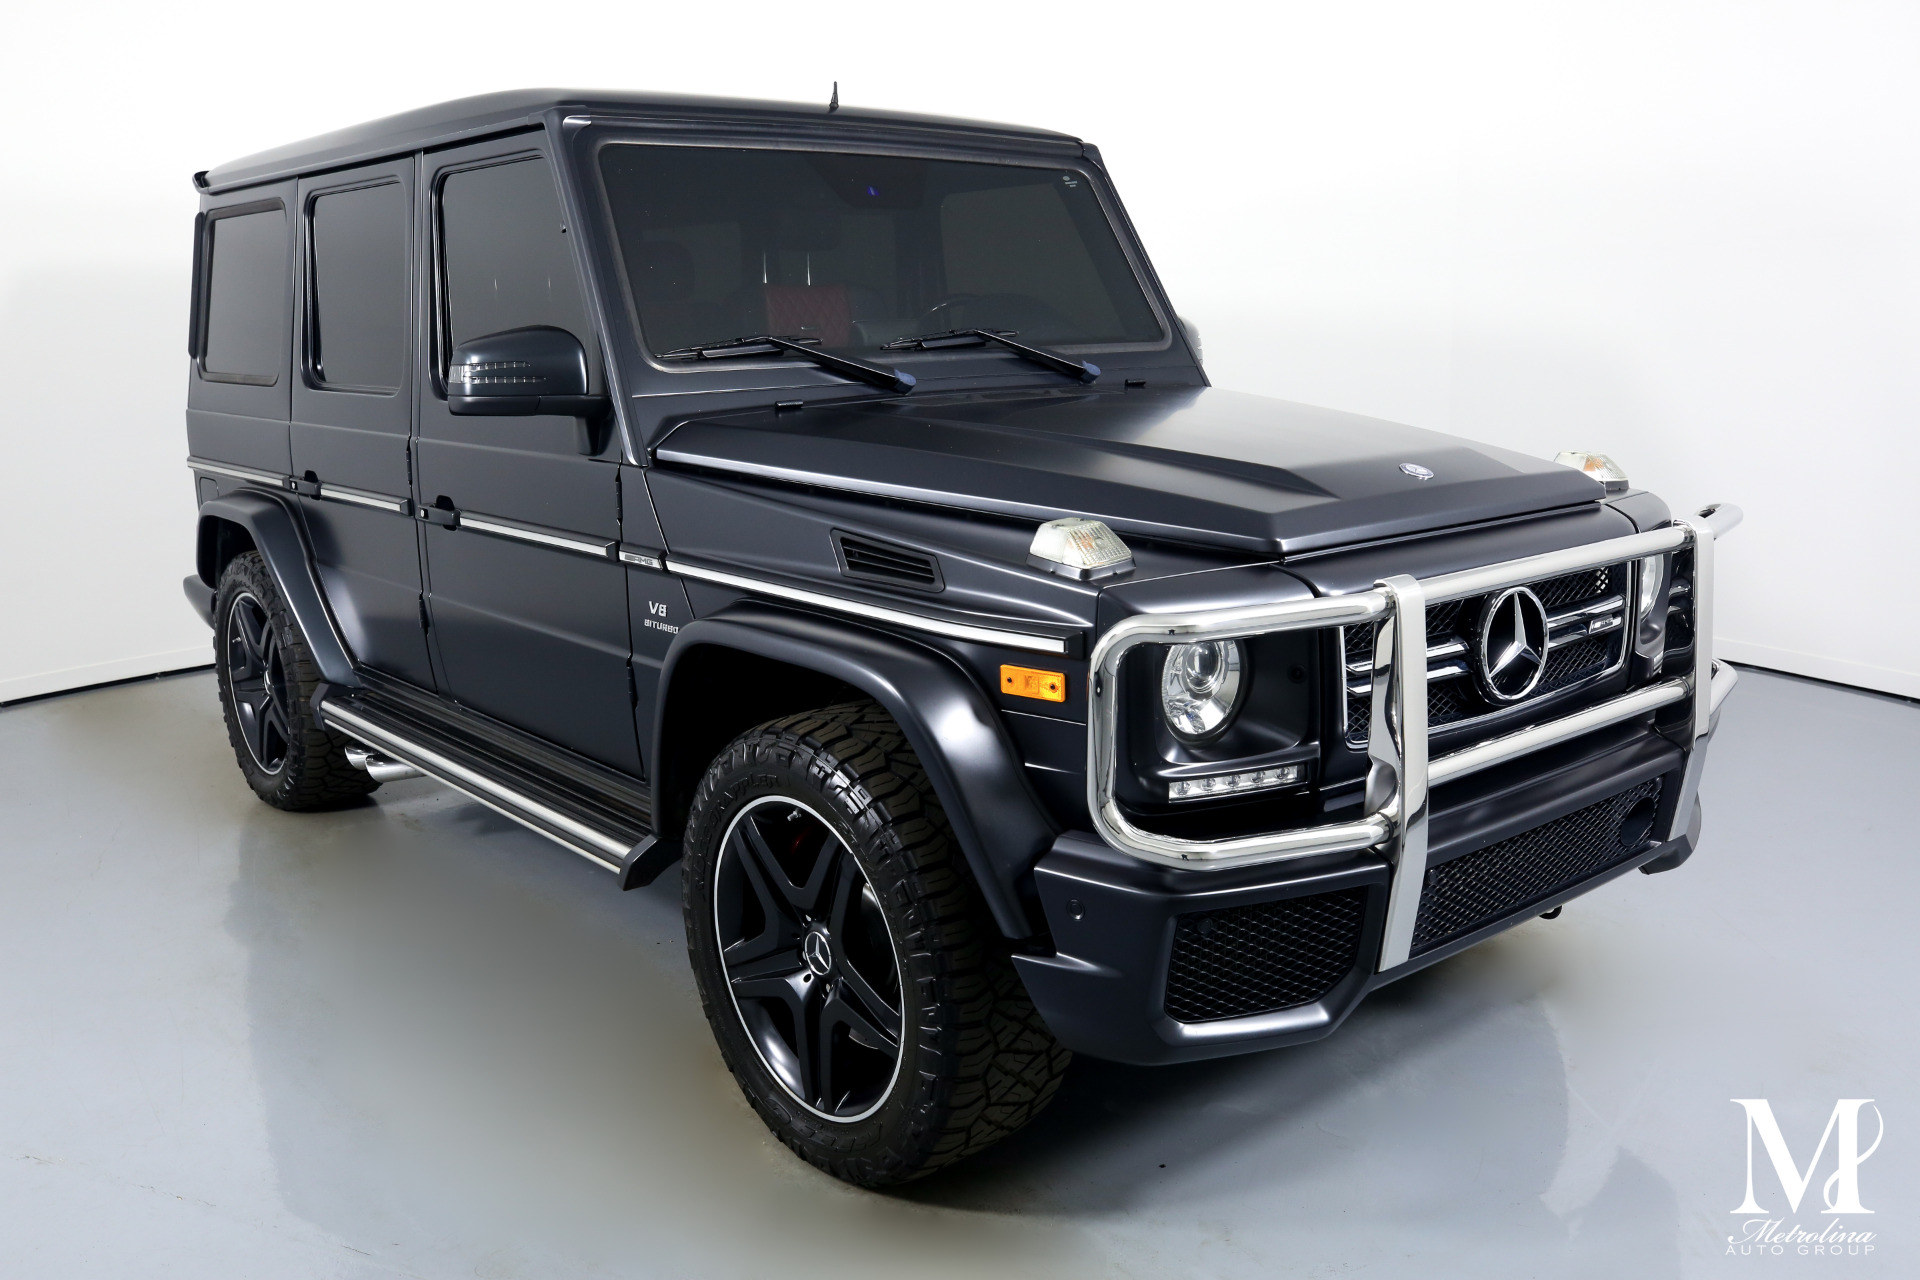 Used 2016 Mercedes-Benz G-Class AMG G 63 for sale Sold at Metrolina Auto Group in Charlotte NC 28217 - 2